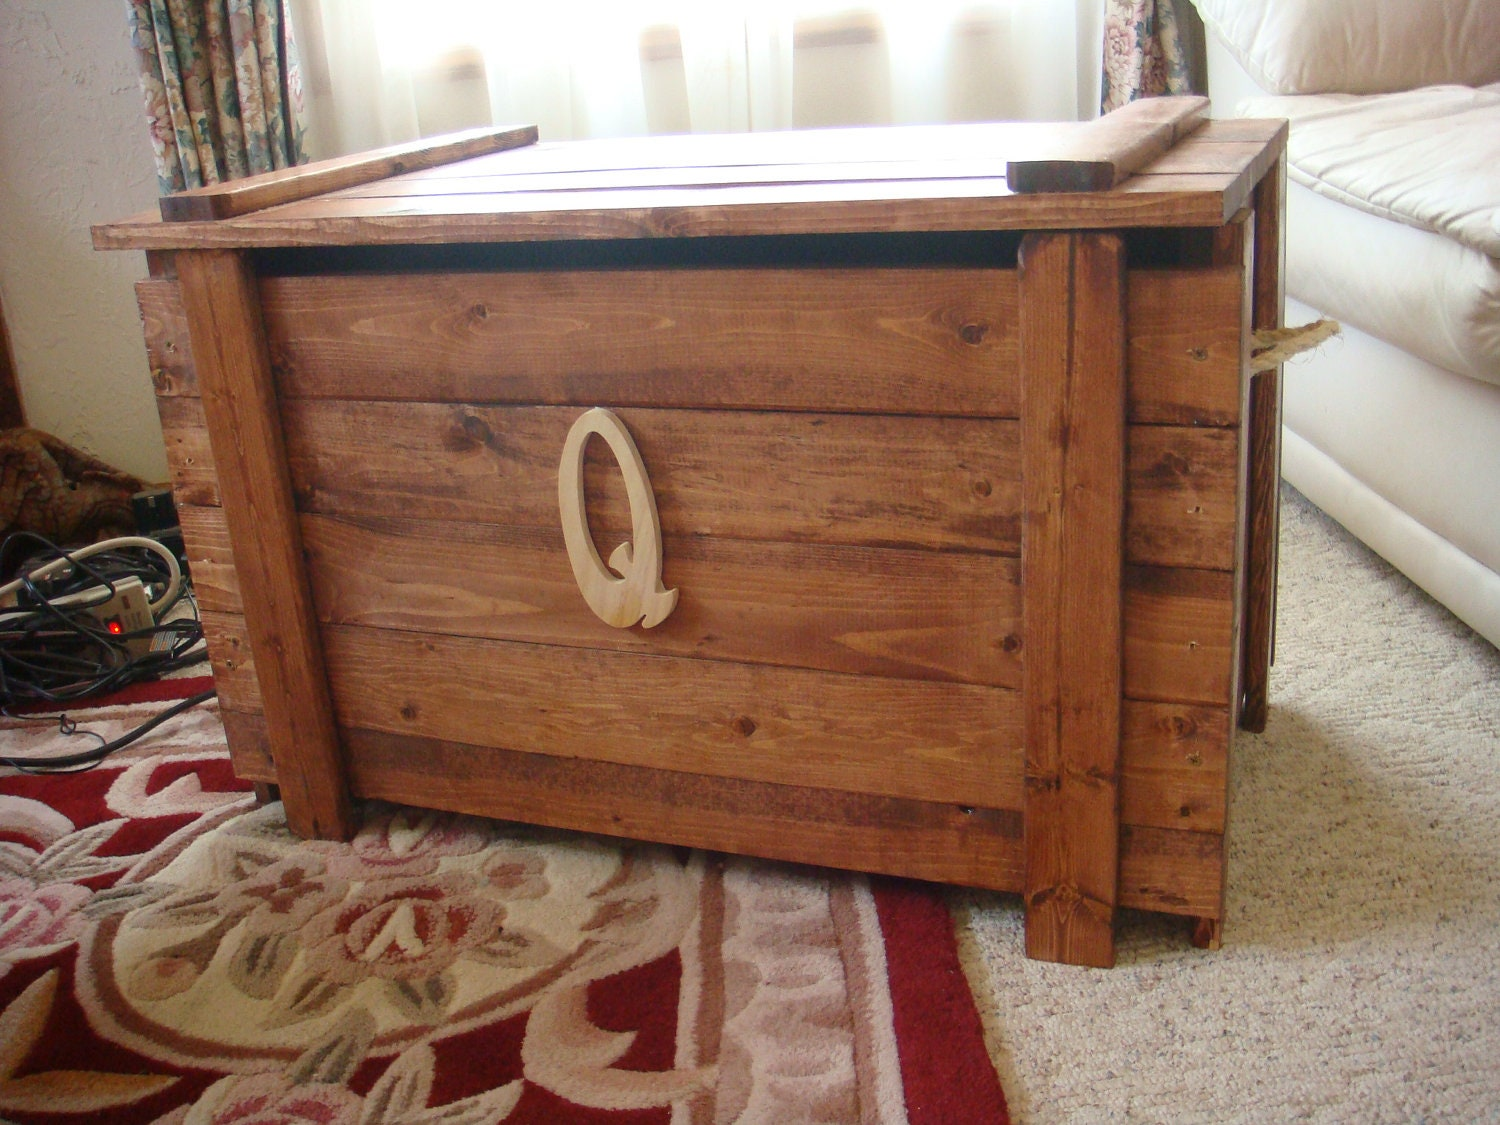 Handmade Wood Toy Chest - Amazing Wood Plans